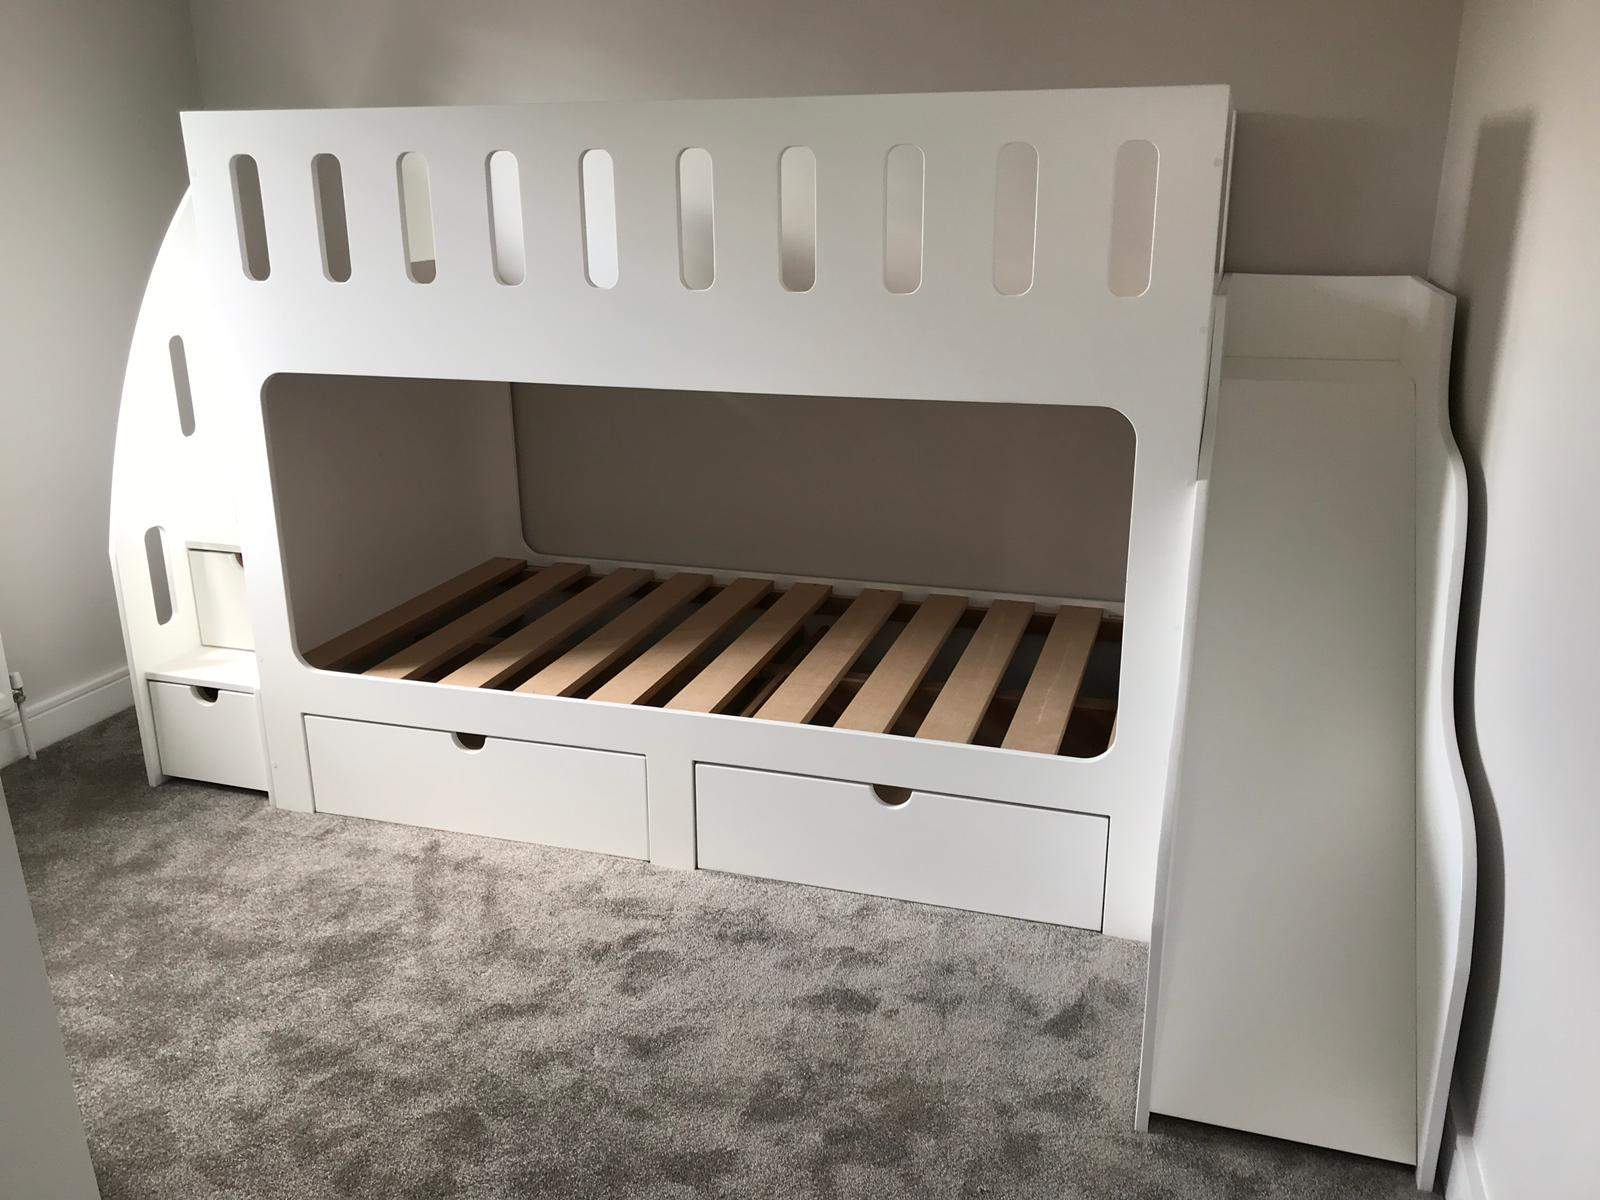 Kids Beds With Slides Online Discount Shop For Electronics Apparel Toys Books Games Computers Shoes Jewelry Watches Baby Products Sports Outdoors Office Products Bed Bath Furniture Tools Hardware Automotive